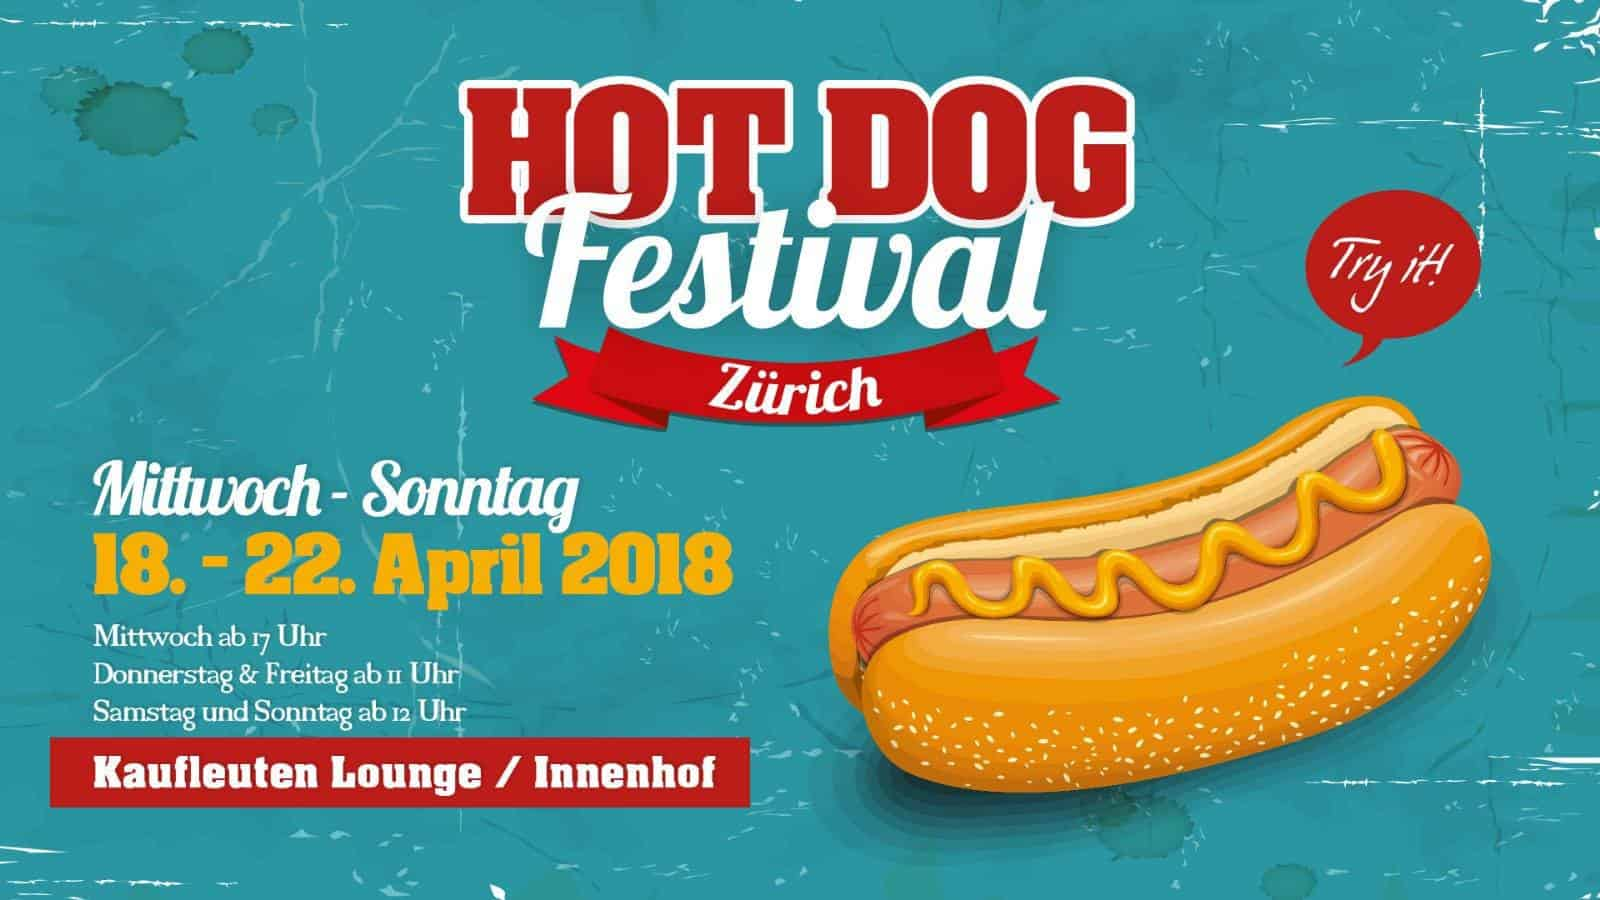 HOT DOG FESTIVAL ZURICH